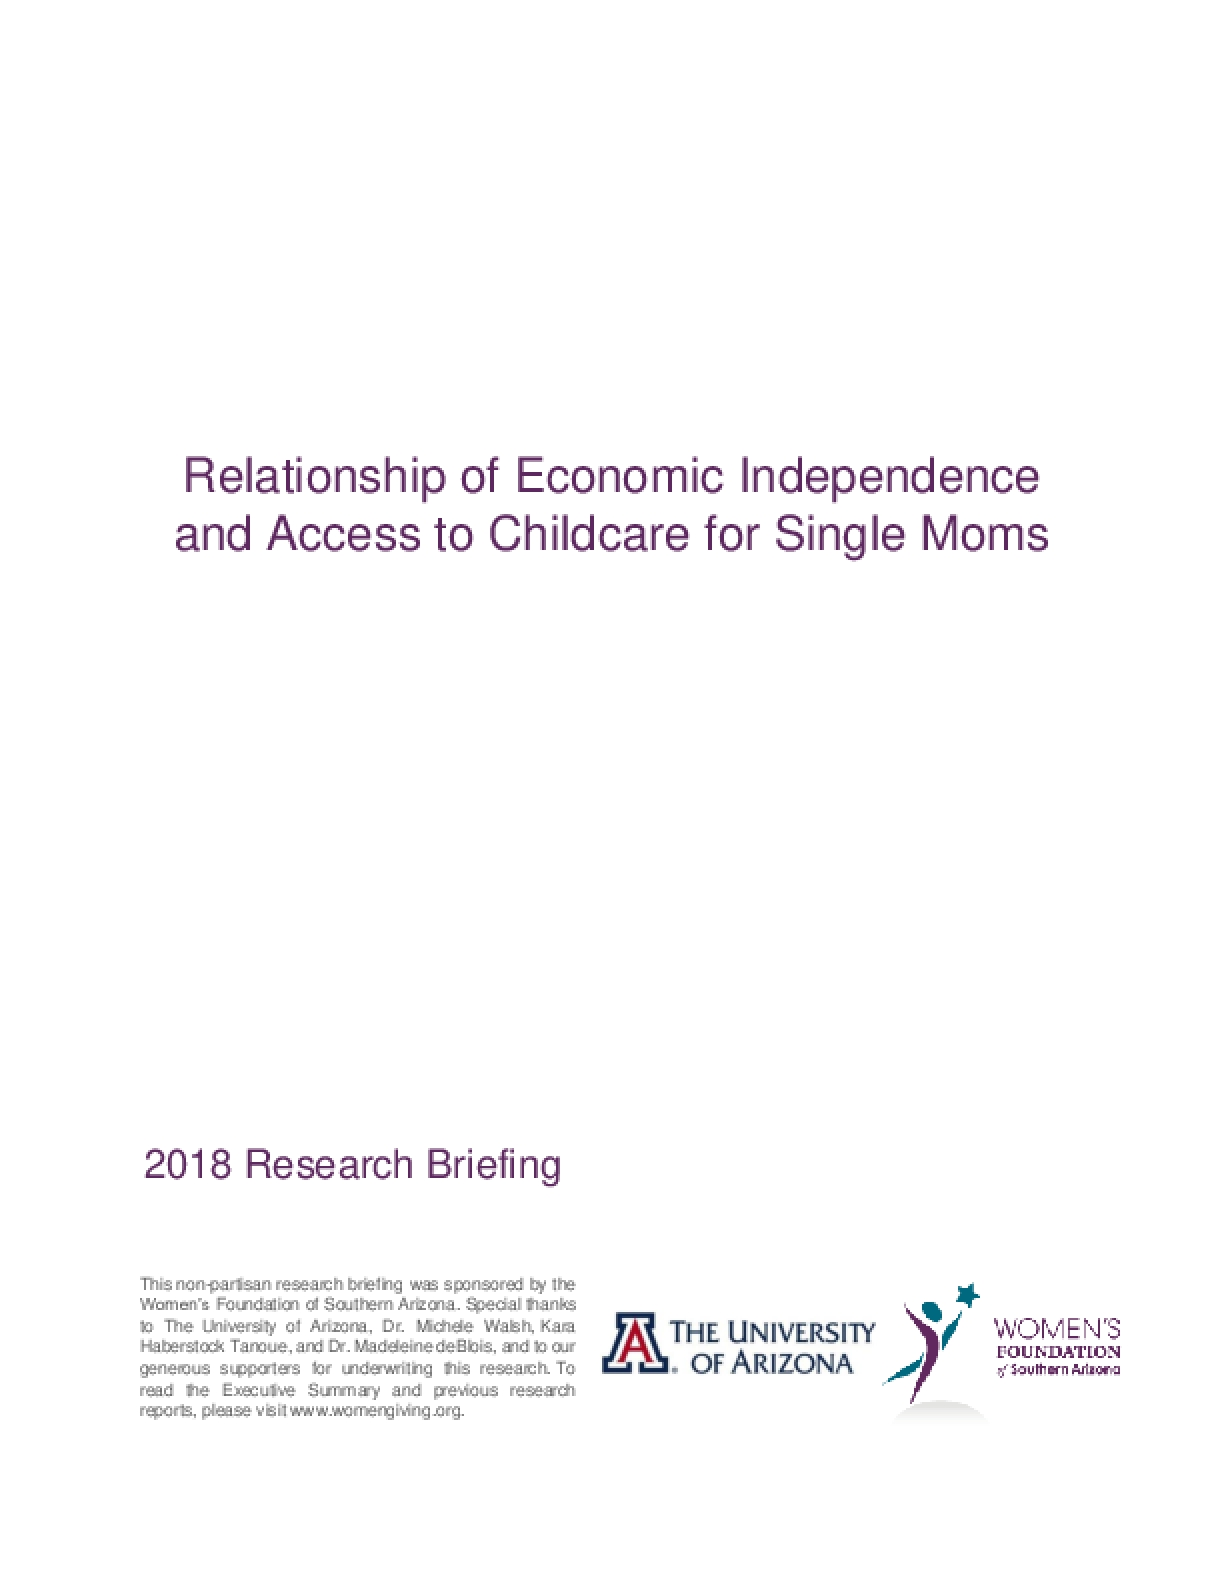 Relationship of Economic Independence and Access to Childcare for Single Moms